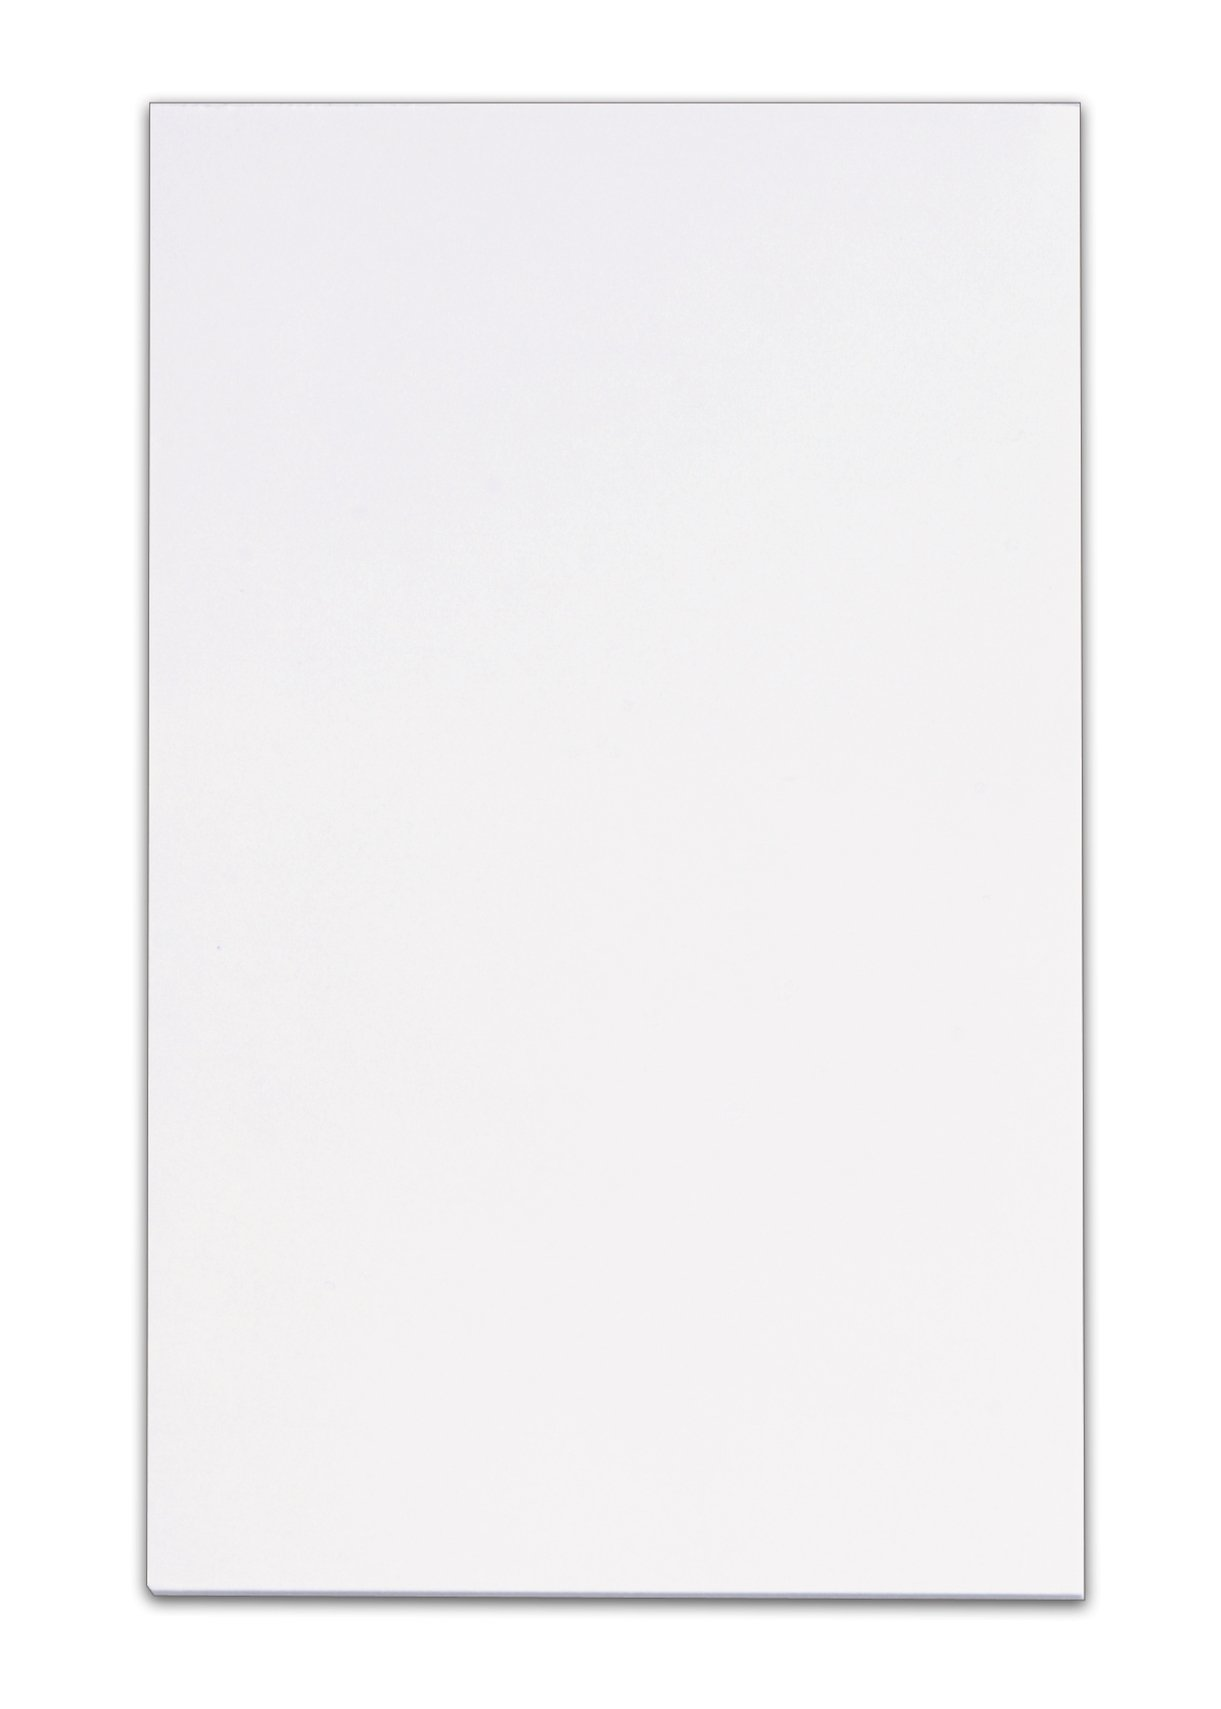 Pendaflex TOP7822 TOPS Memo Pad, 5 x 8 Inches, Plain, 100 sheets per Pad, White, Pack of 12 Pads (7822)